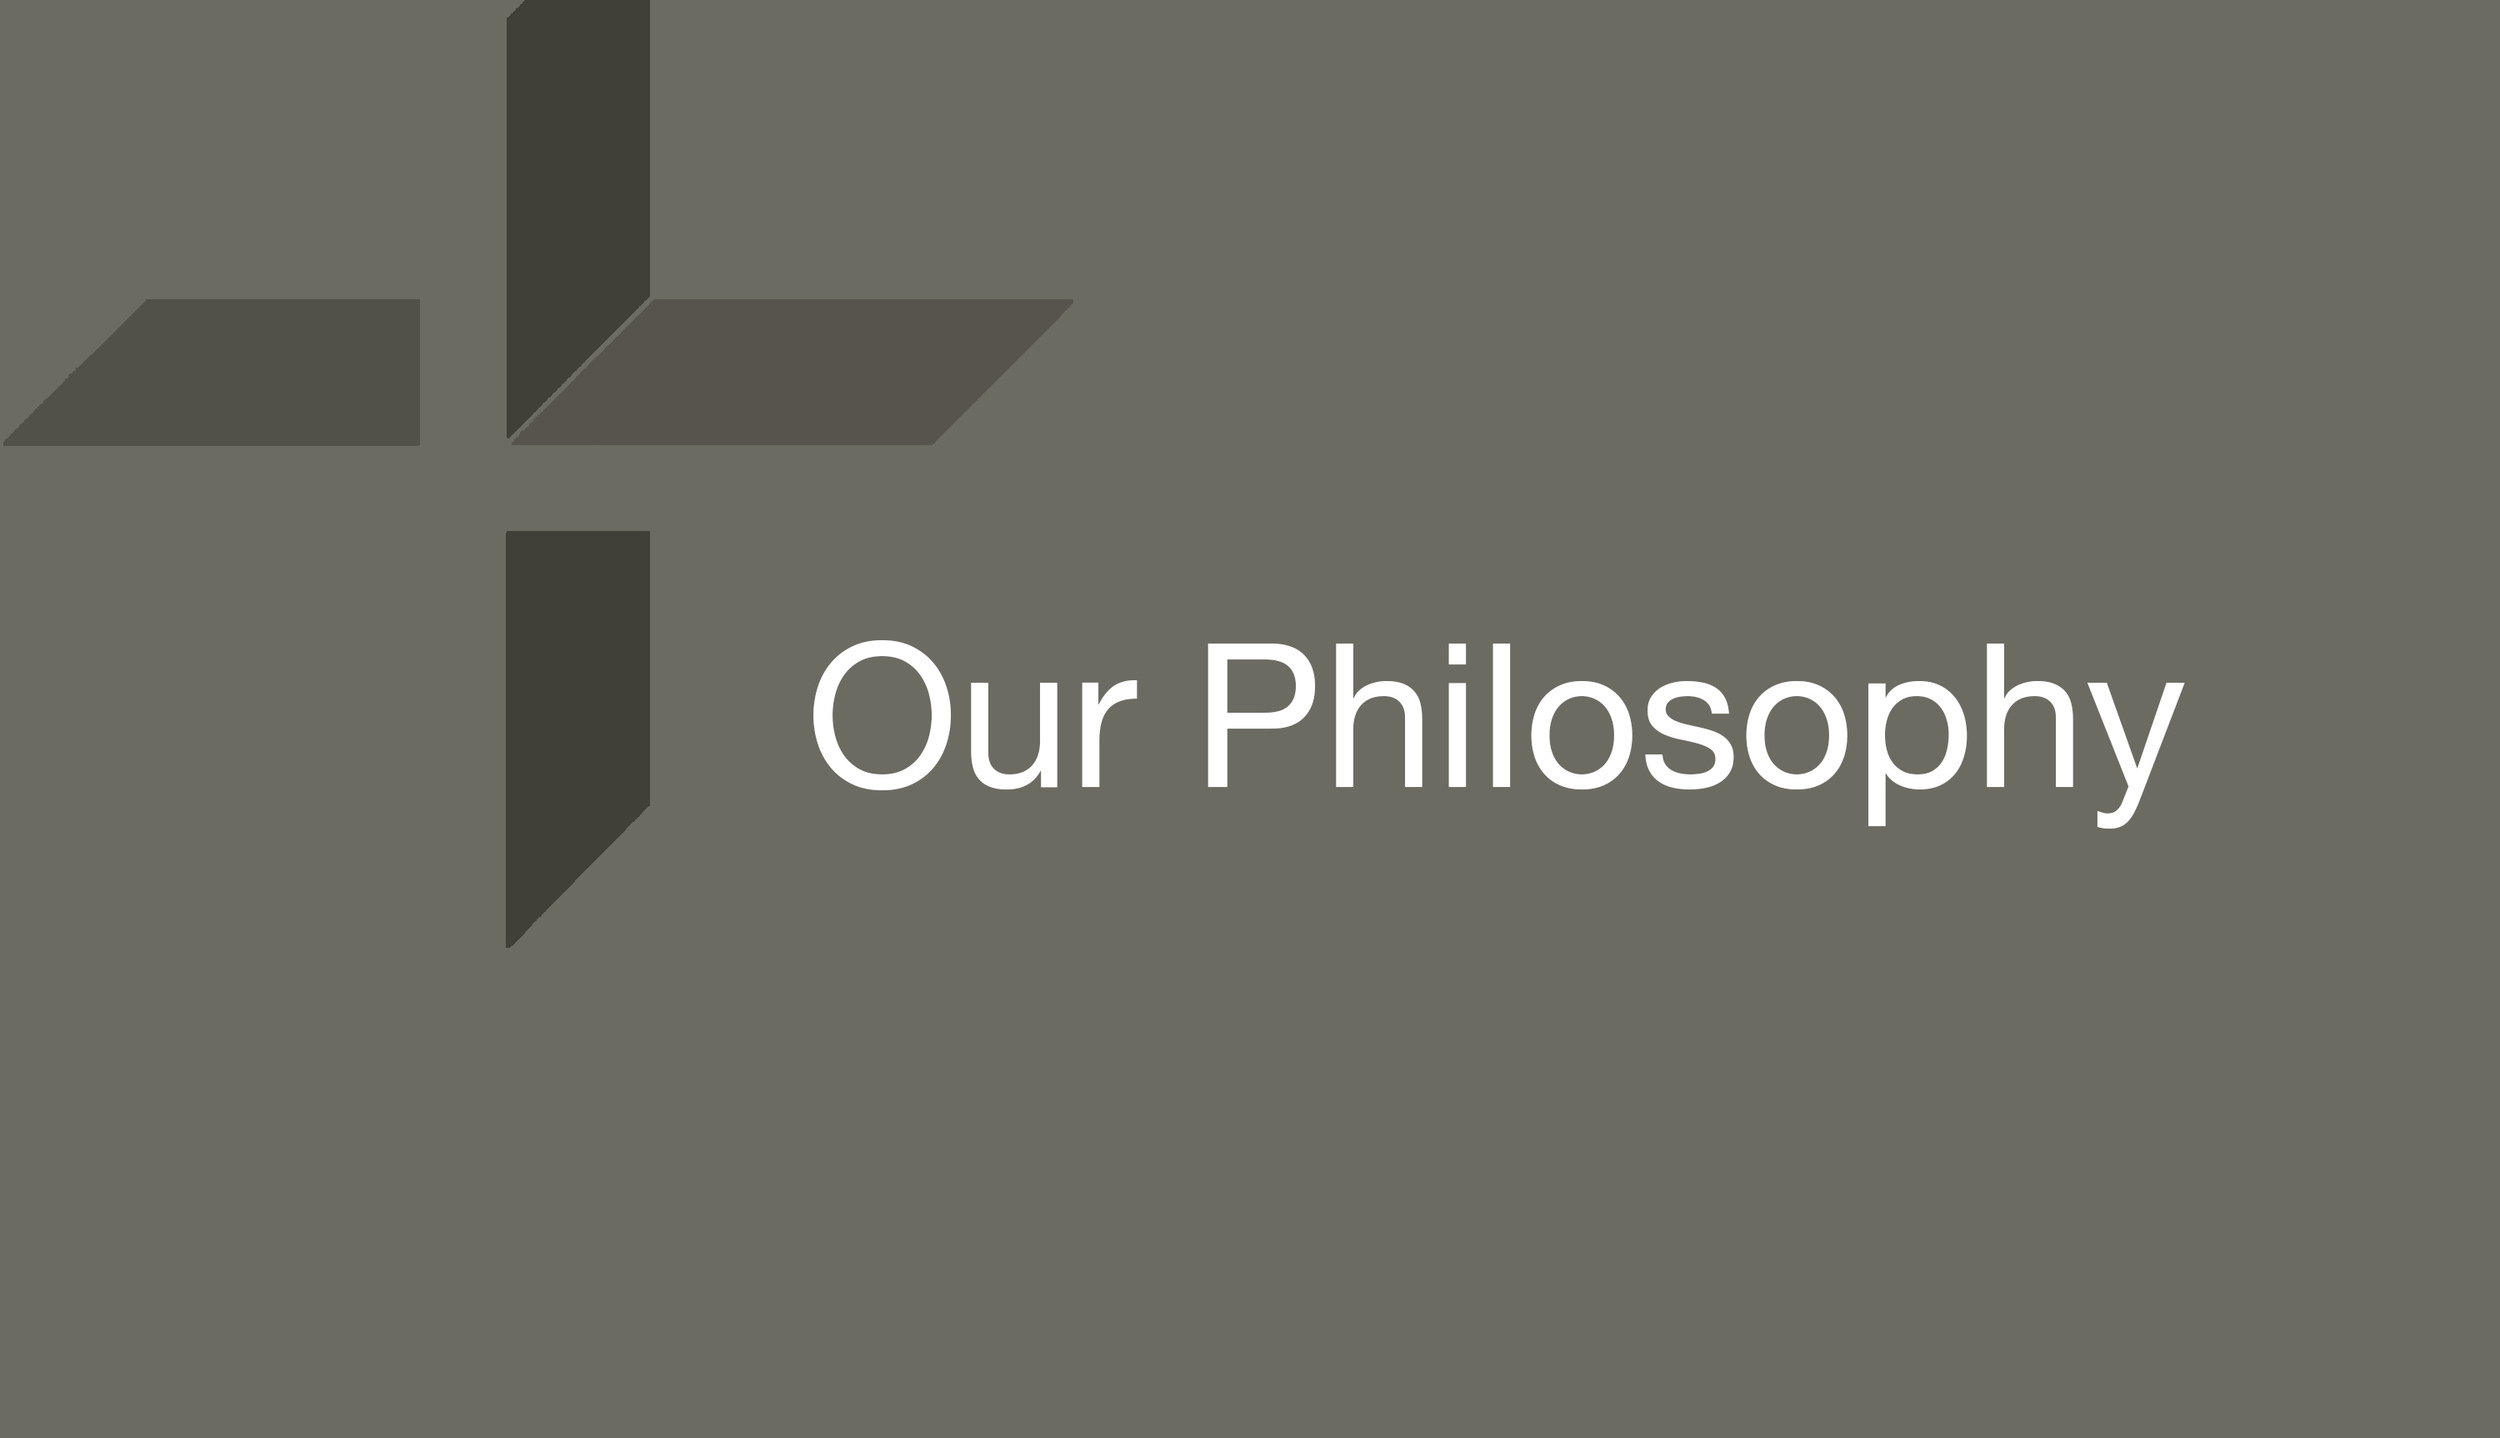 philosophy grey.jpg